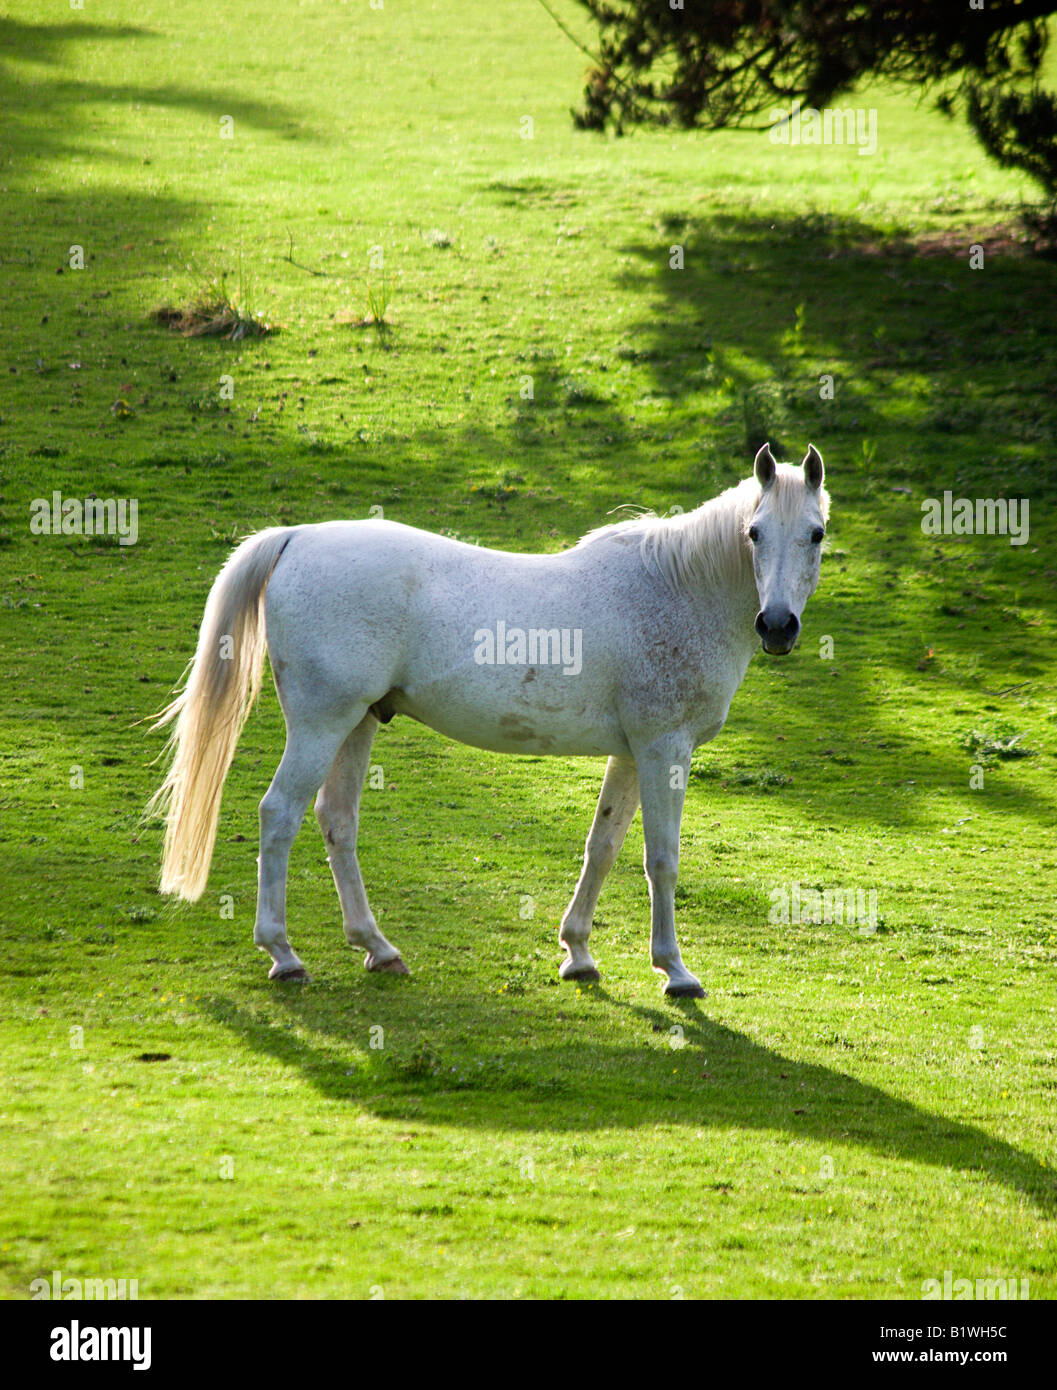 ENGLAND West Sussex Chichester White stallion casting shadow in evening light standing in field looking at camera - Stock Image